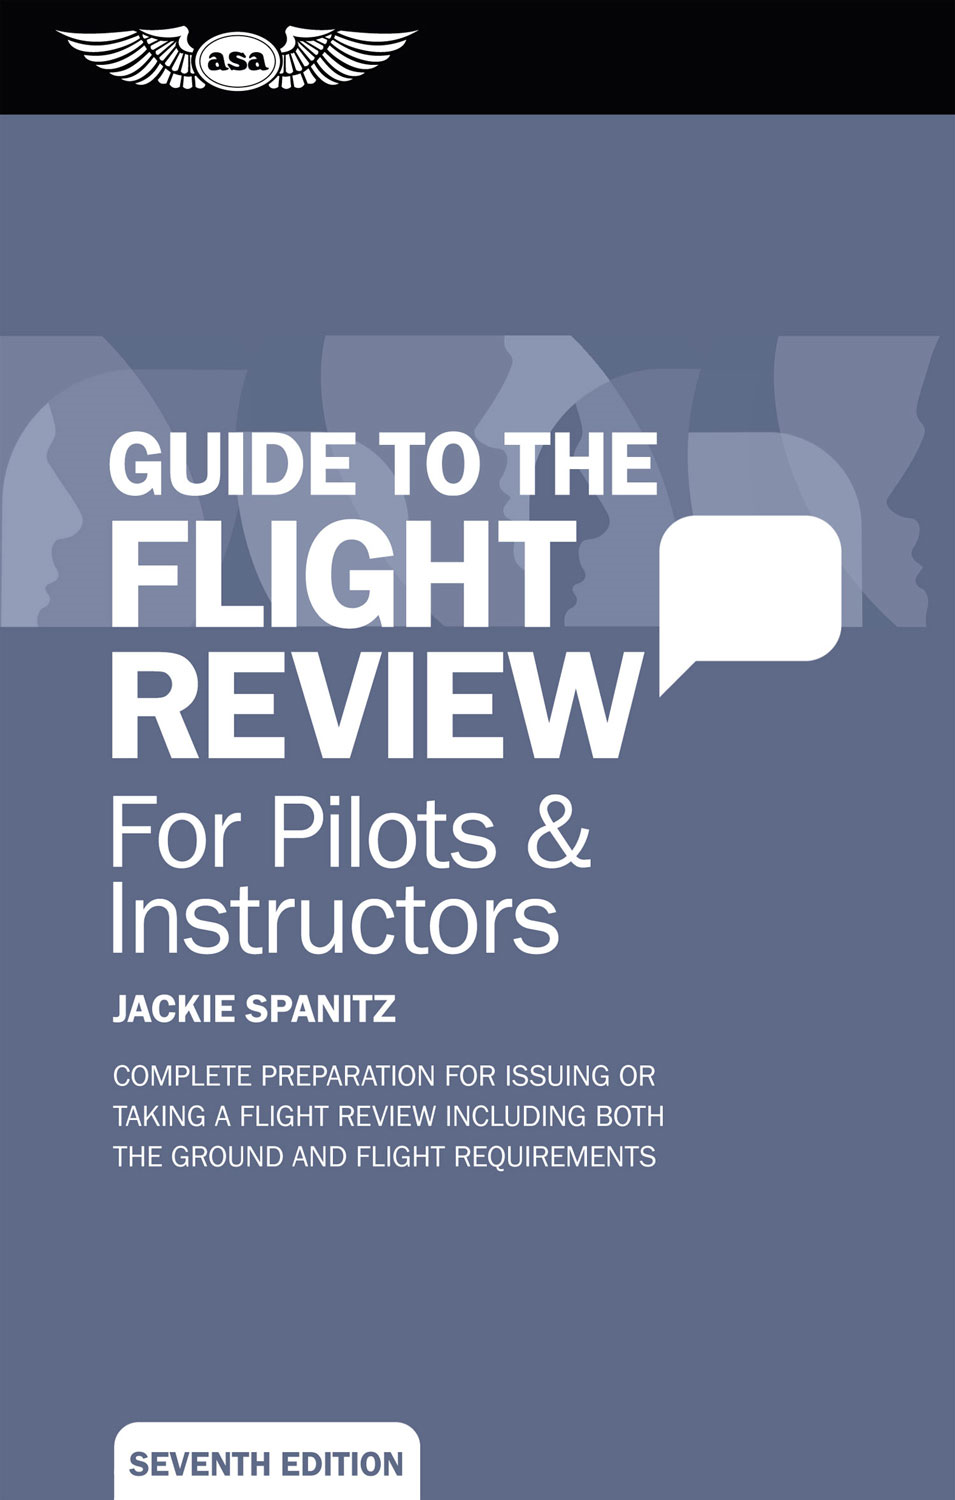 Guide to the Flight Review